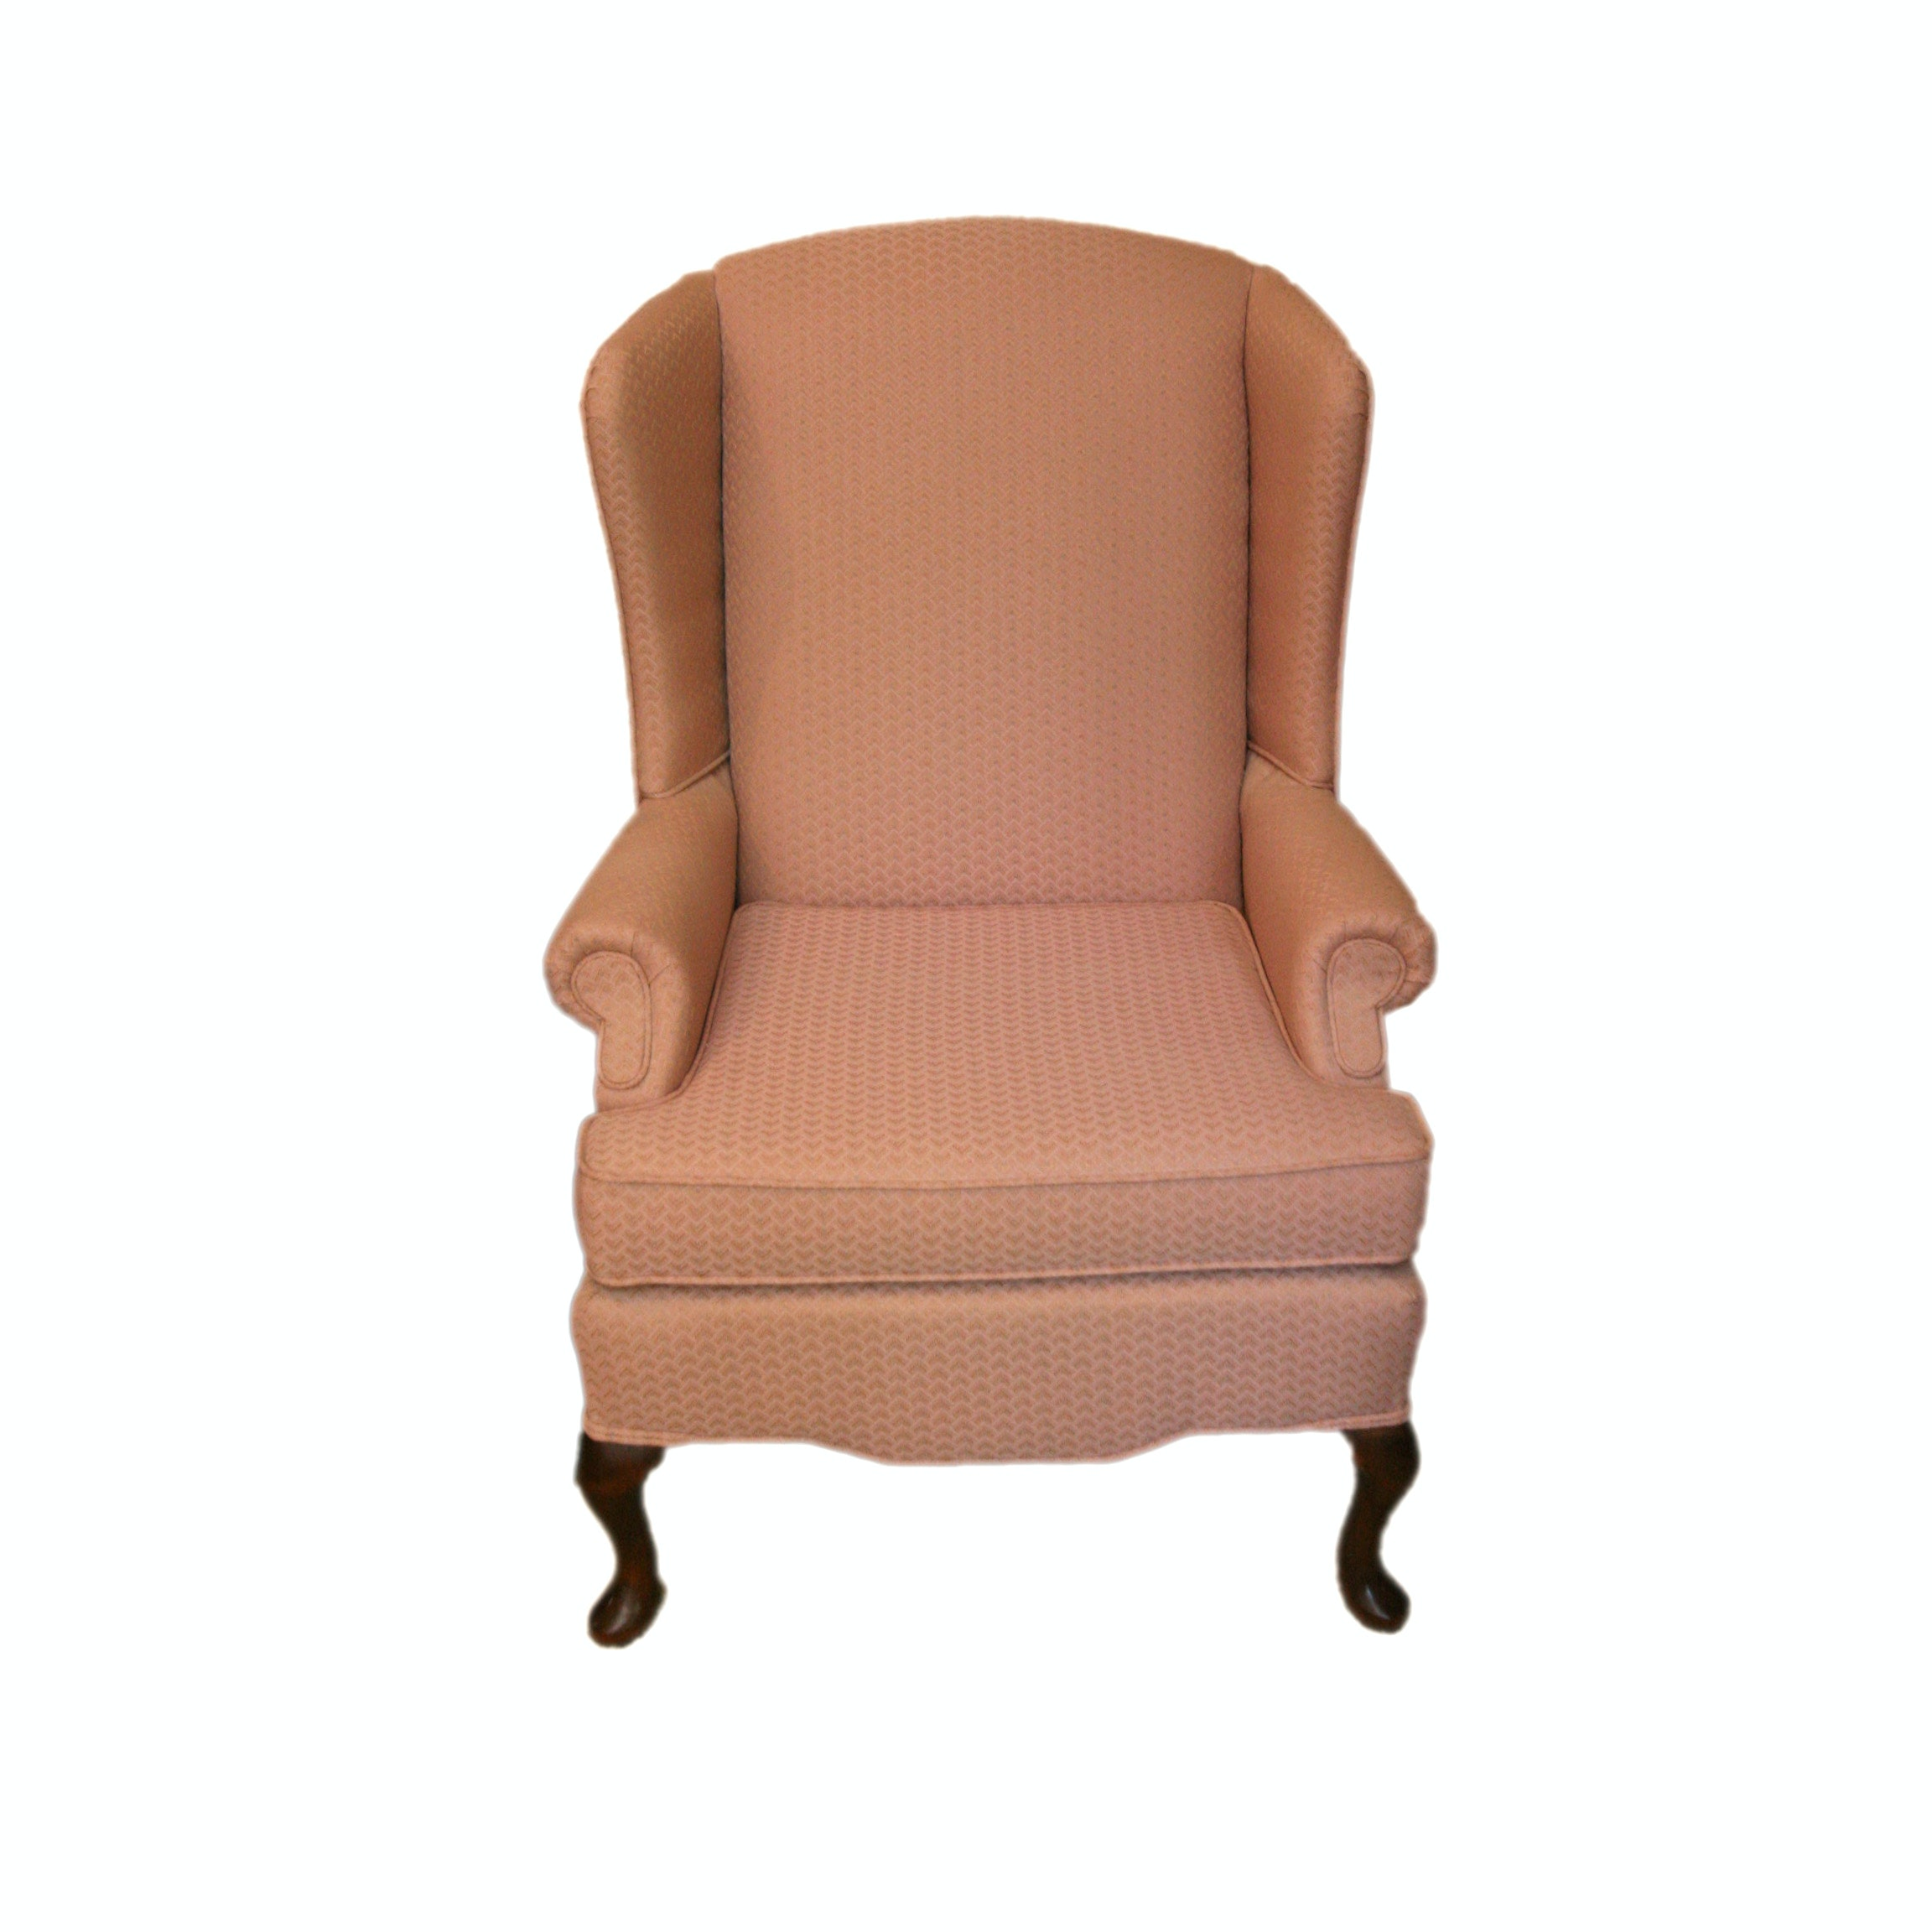 Queen Anne Style Upholstered Wingback Chair By Best Chairs, Inc. ...